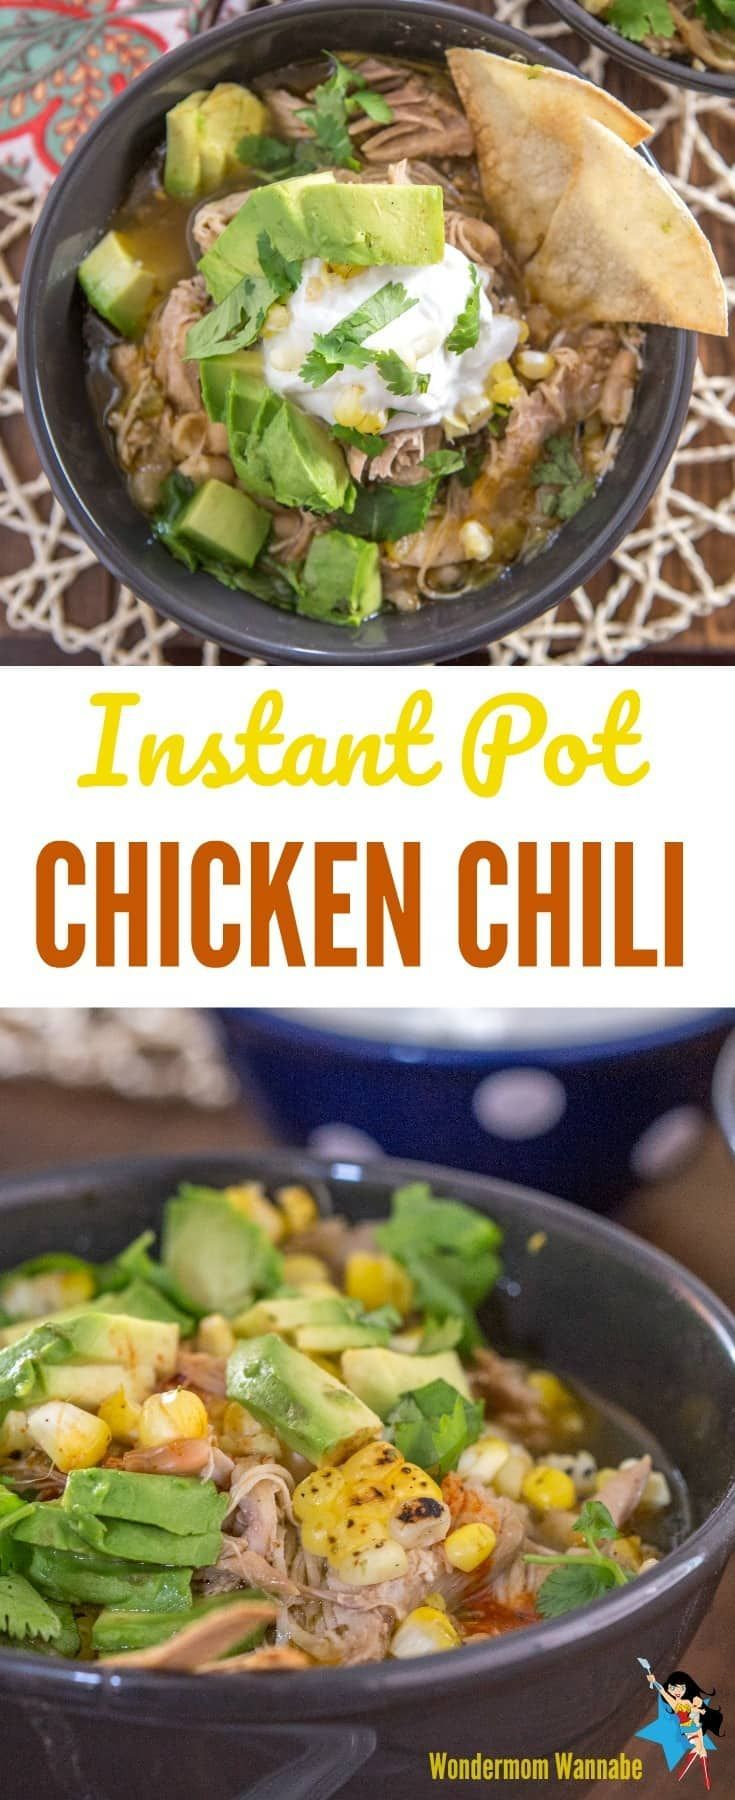 This Instant Pot White Chicken Chili is so yummy and perfect for those days when you want comfort food but don't want to feel guilty either. I love the Tex Mex flavors in this dish too!